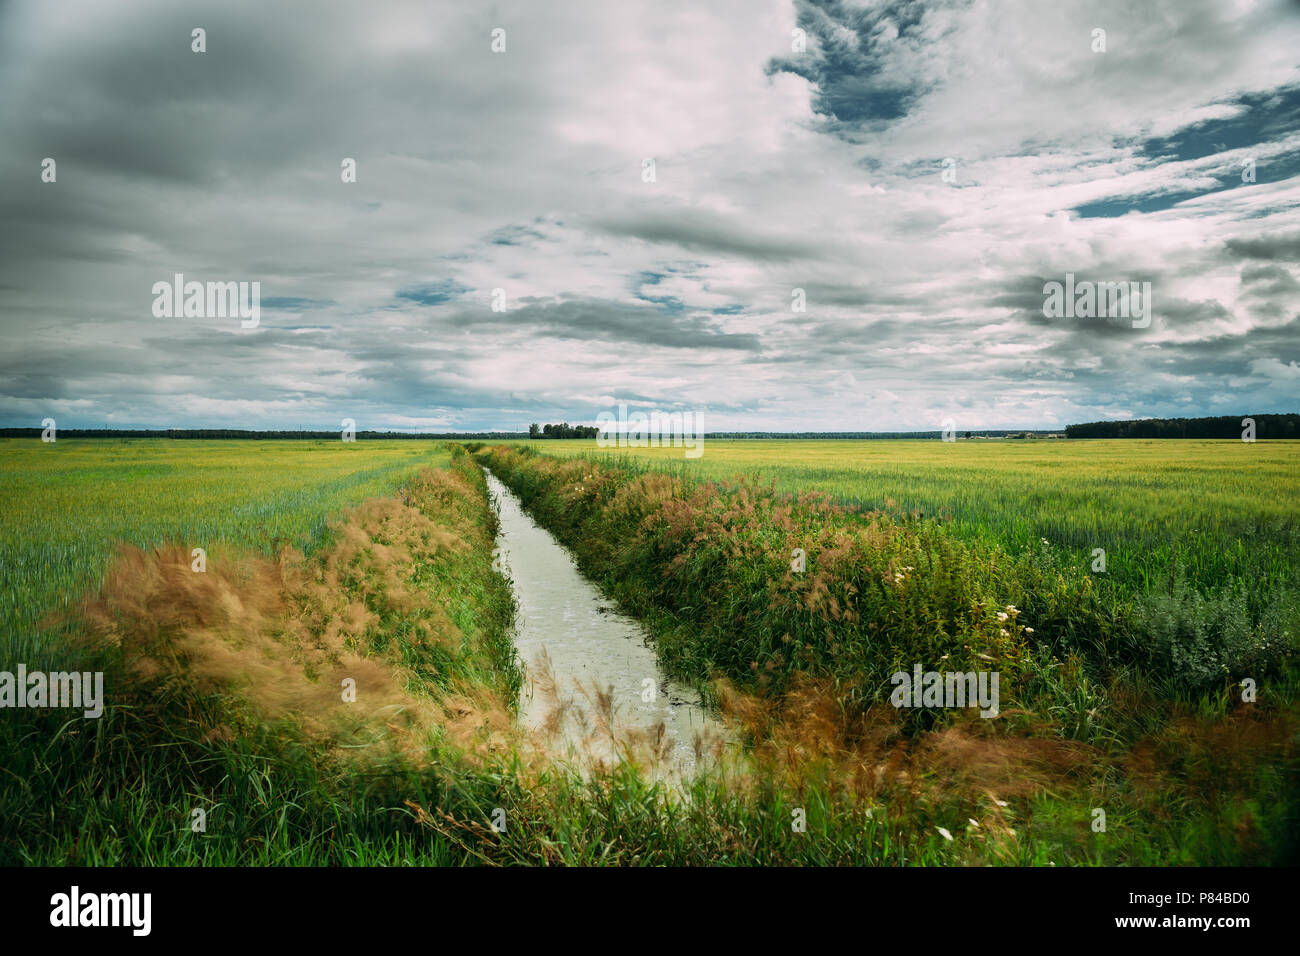 Countryside Landscape With Ameliorative Canal Ditch In Green Agricultural Field Meadow. Summer Cloudy Day. Stock Photo